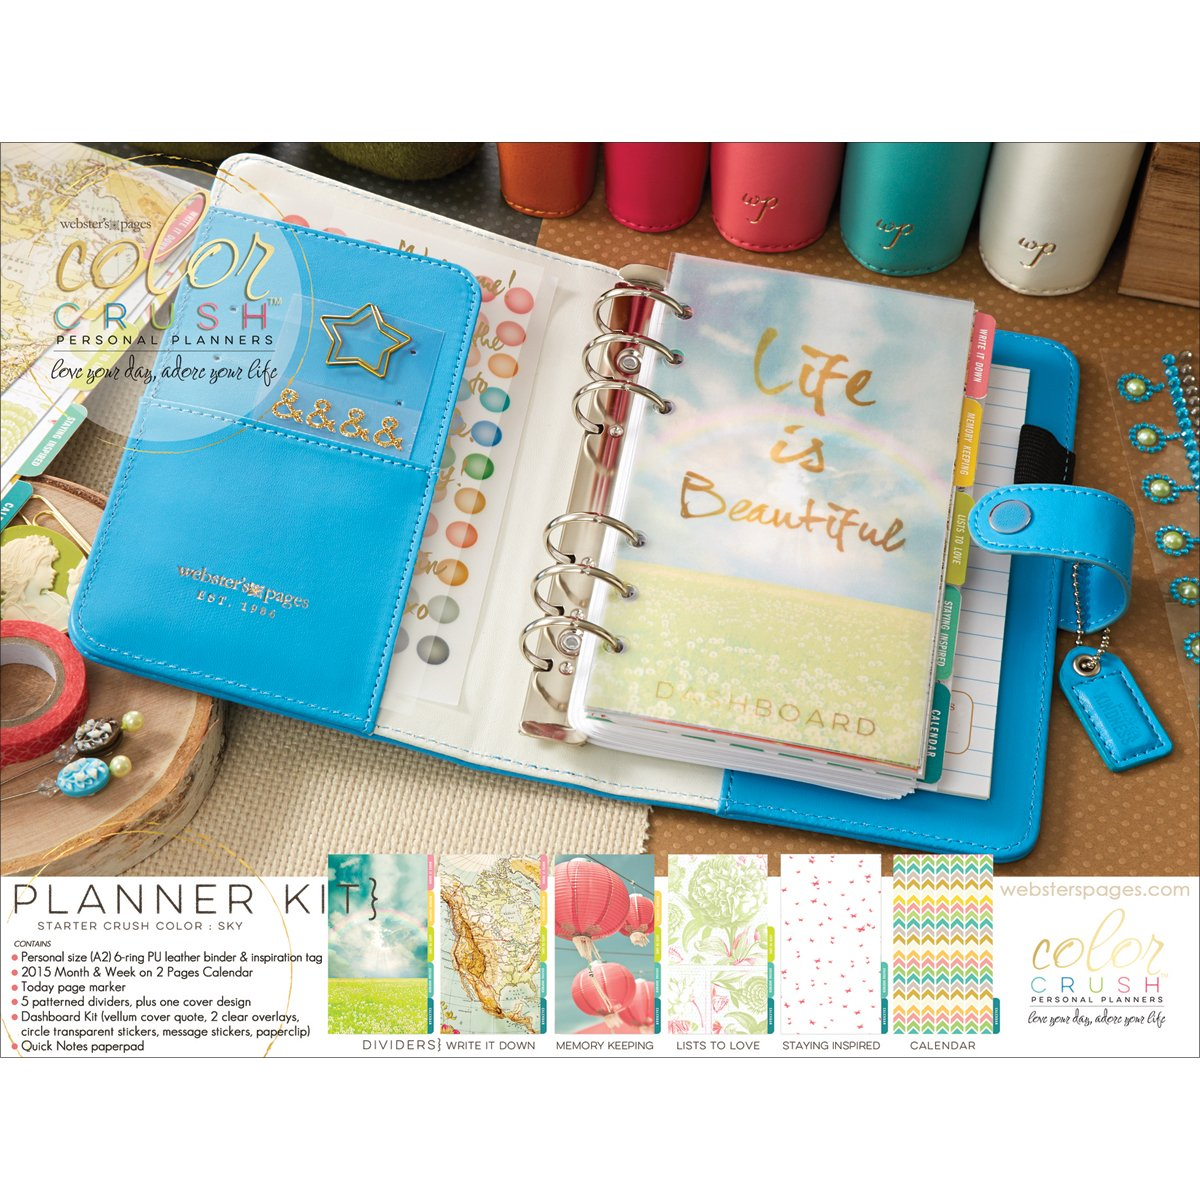 websters pages planner